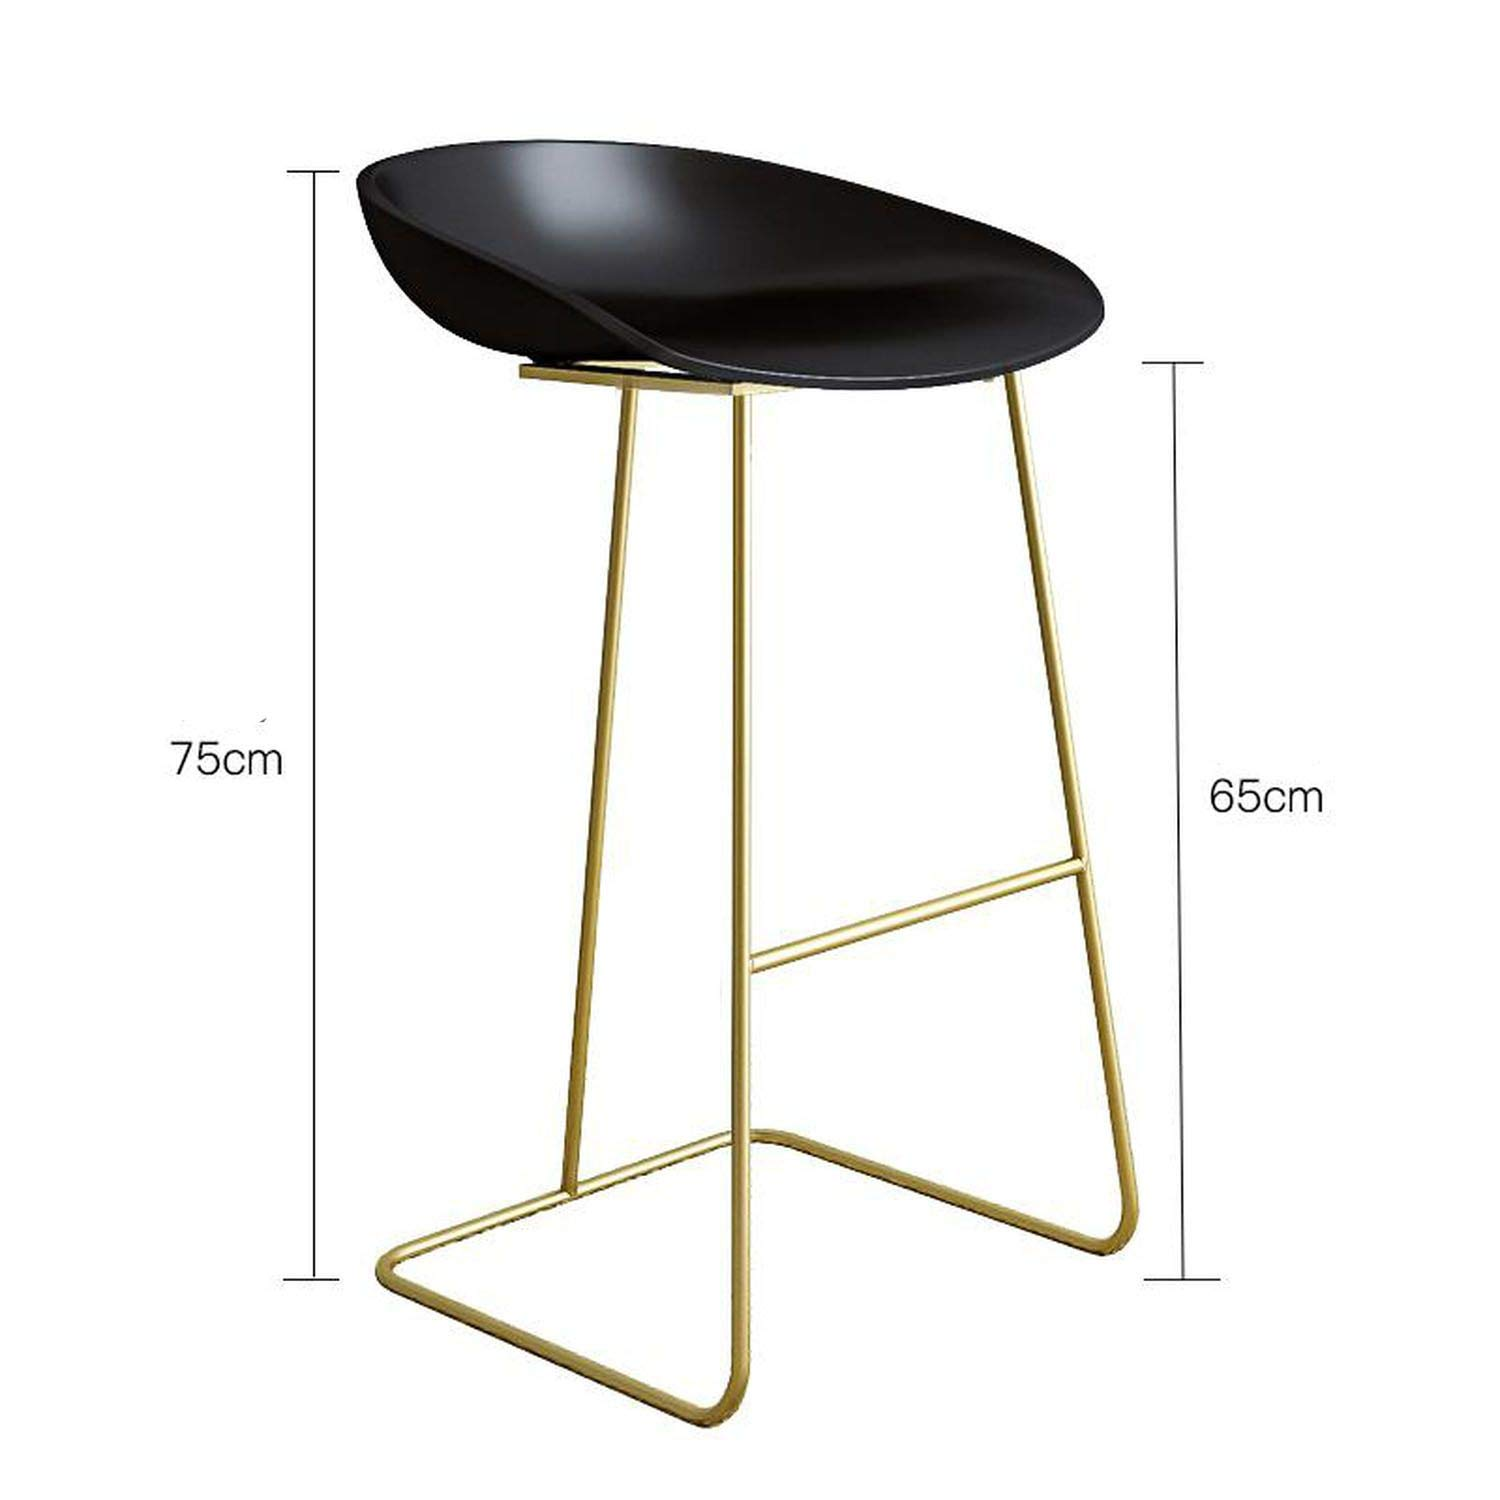 Style 11 one size Bar Stools gold Wrought Iron Stool Modern Minimalist Home Backrest High Chair Creative Net Red Bar,Style 11